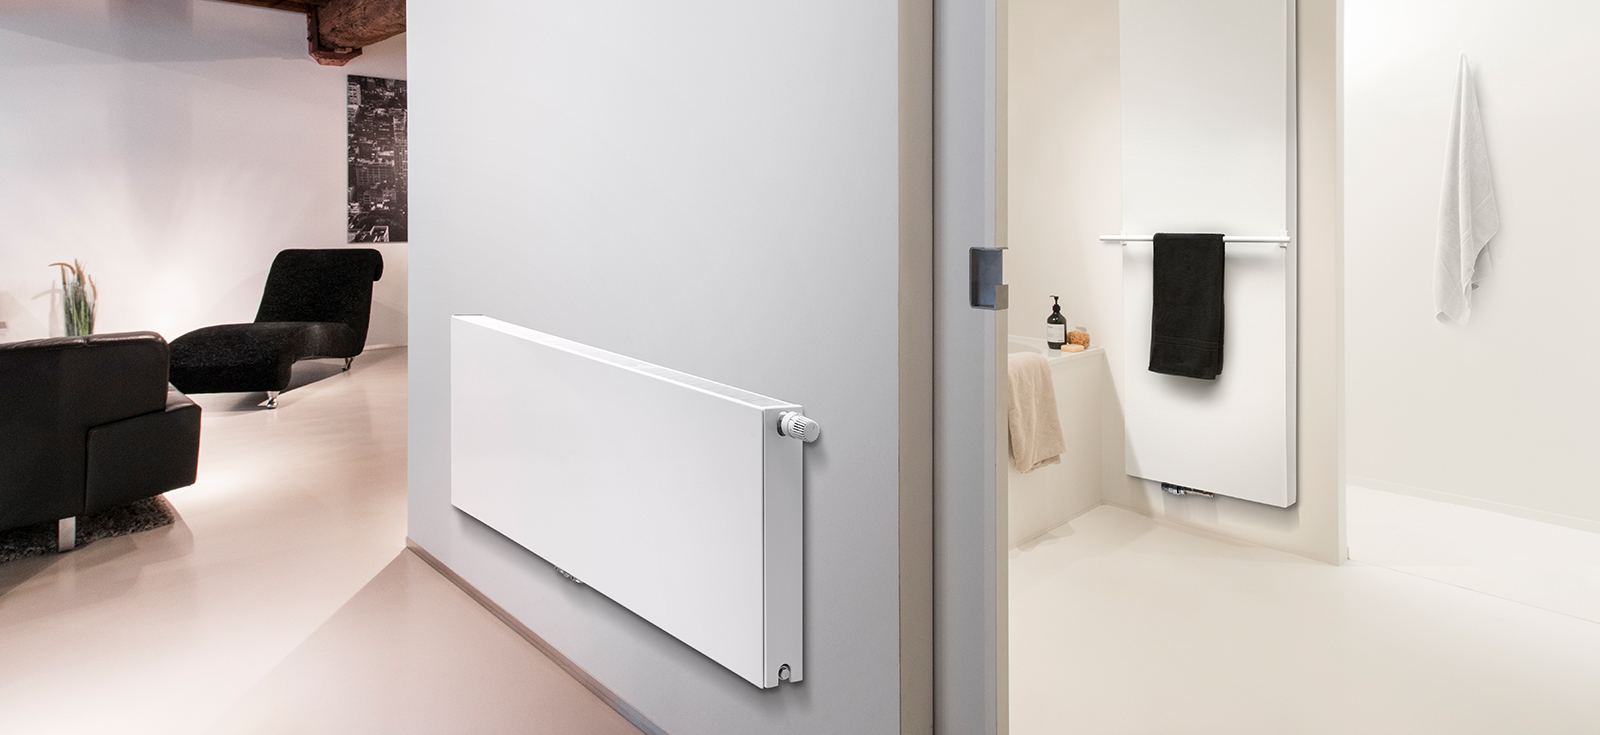 Design Radiator Verticaal.Verti M Design Superia